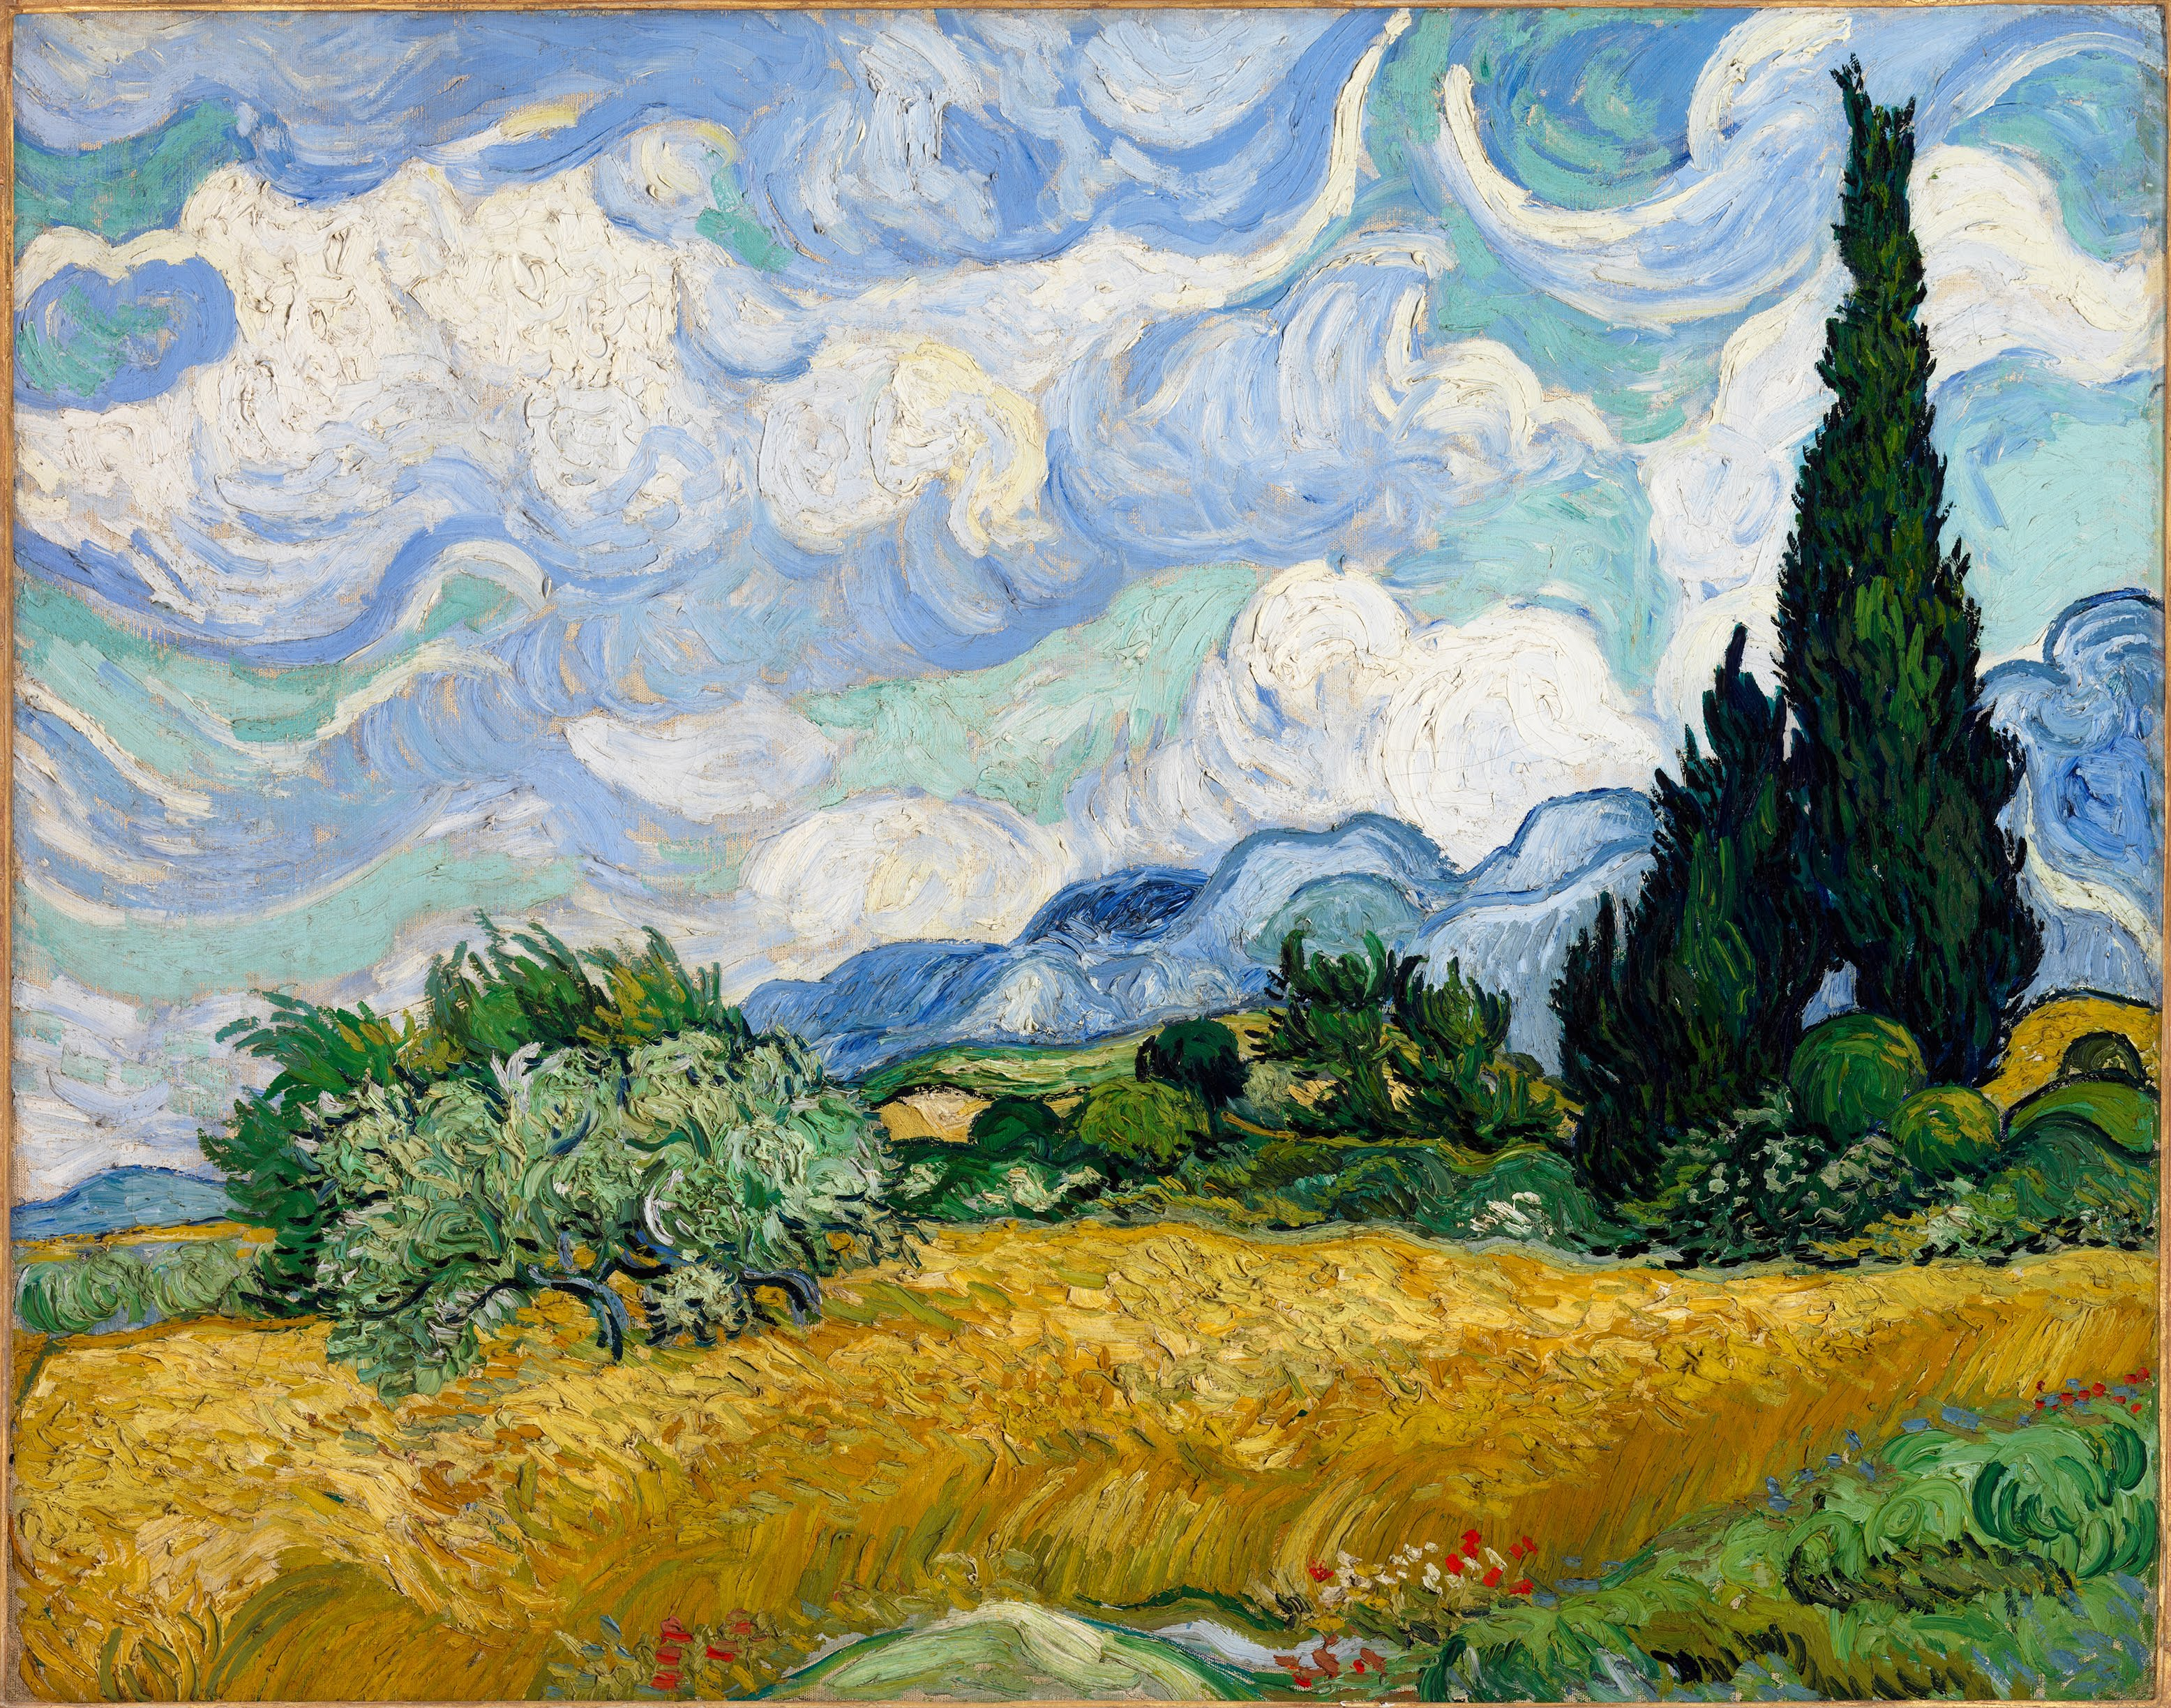 Vincent_van_Gogh_-_Wheat_Field_with_Cypresses_-_Google_Art_Project.jpg